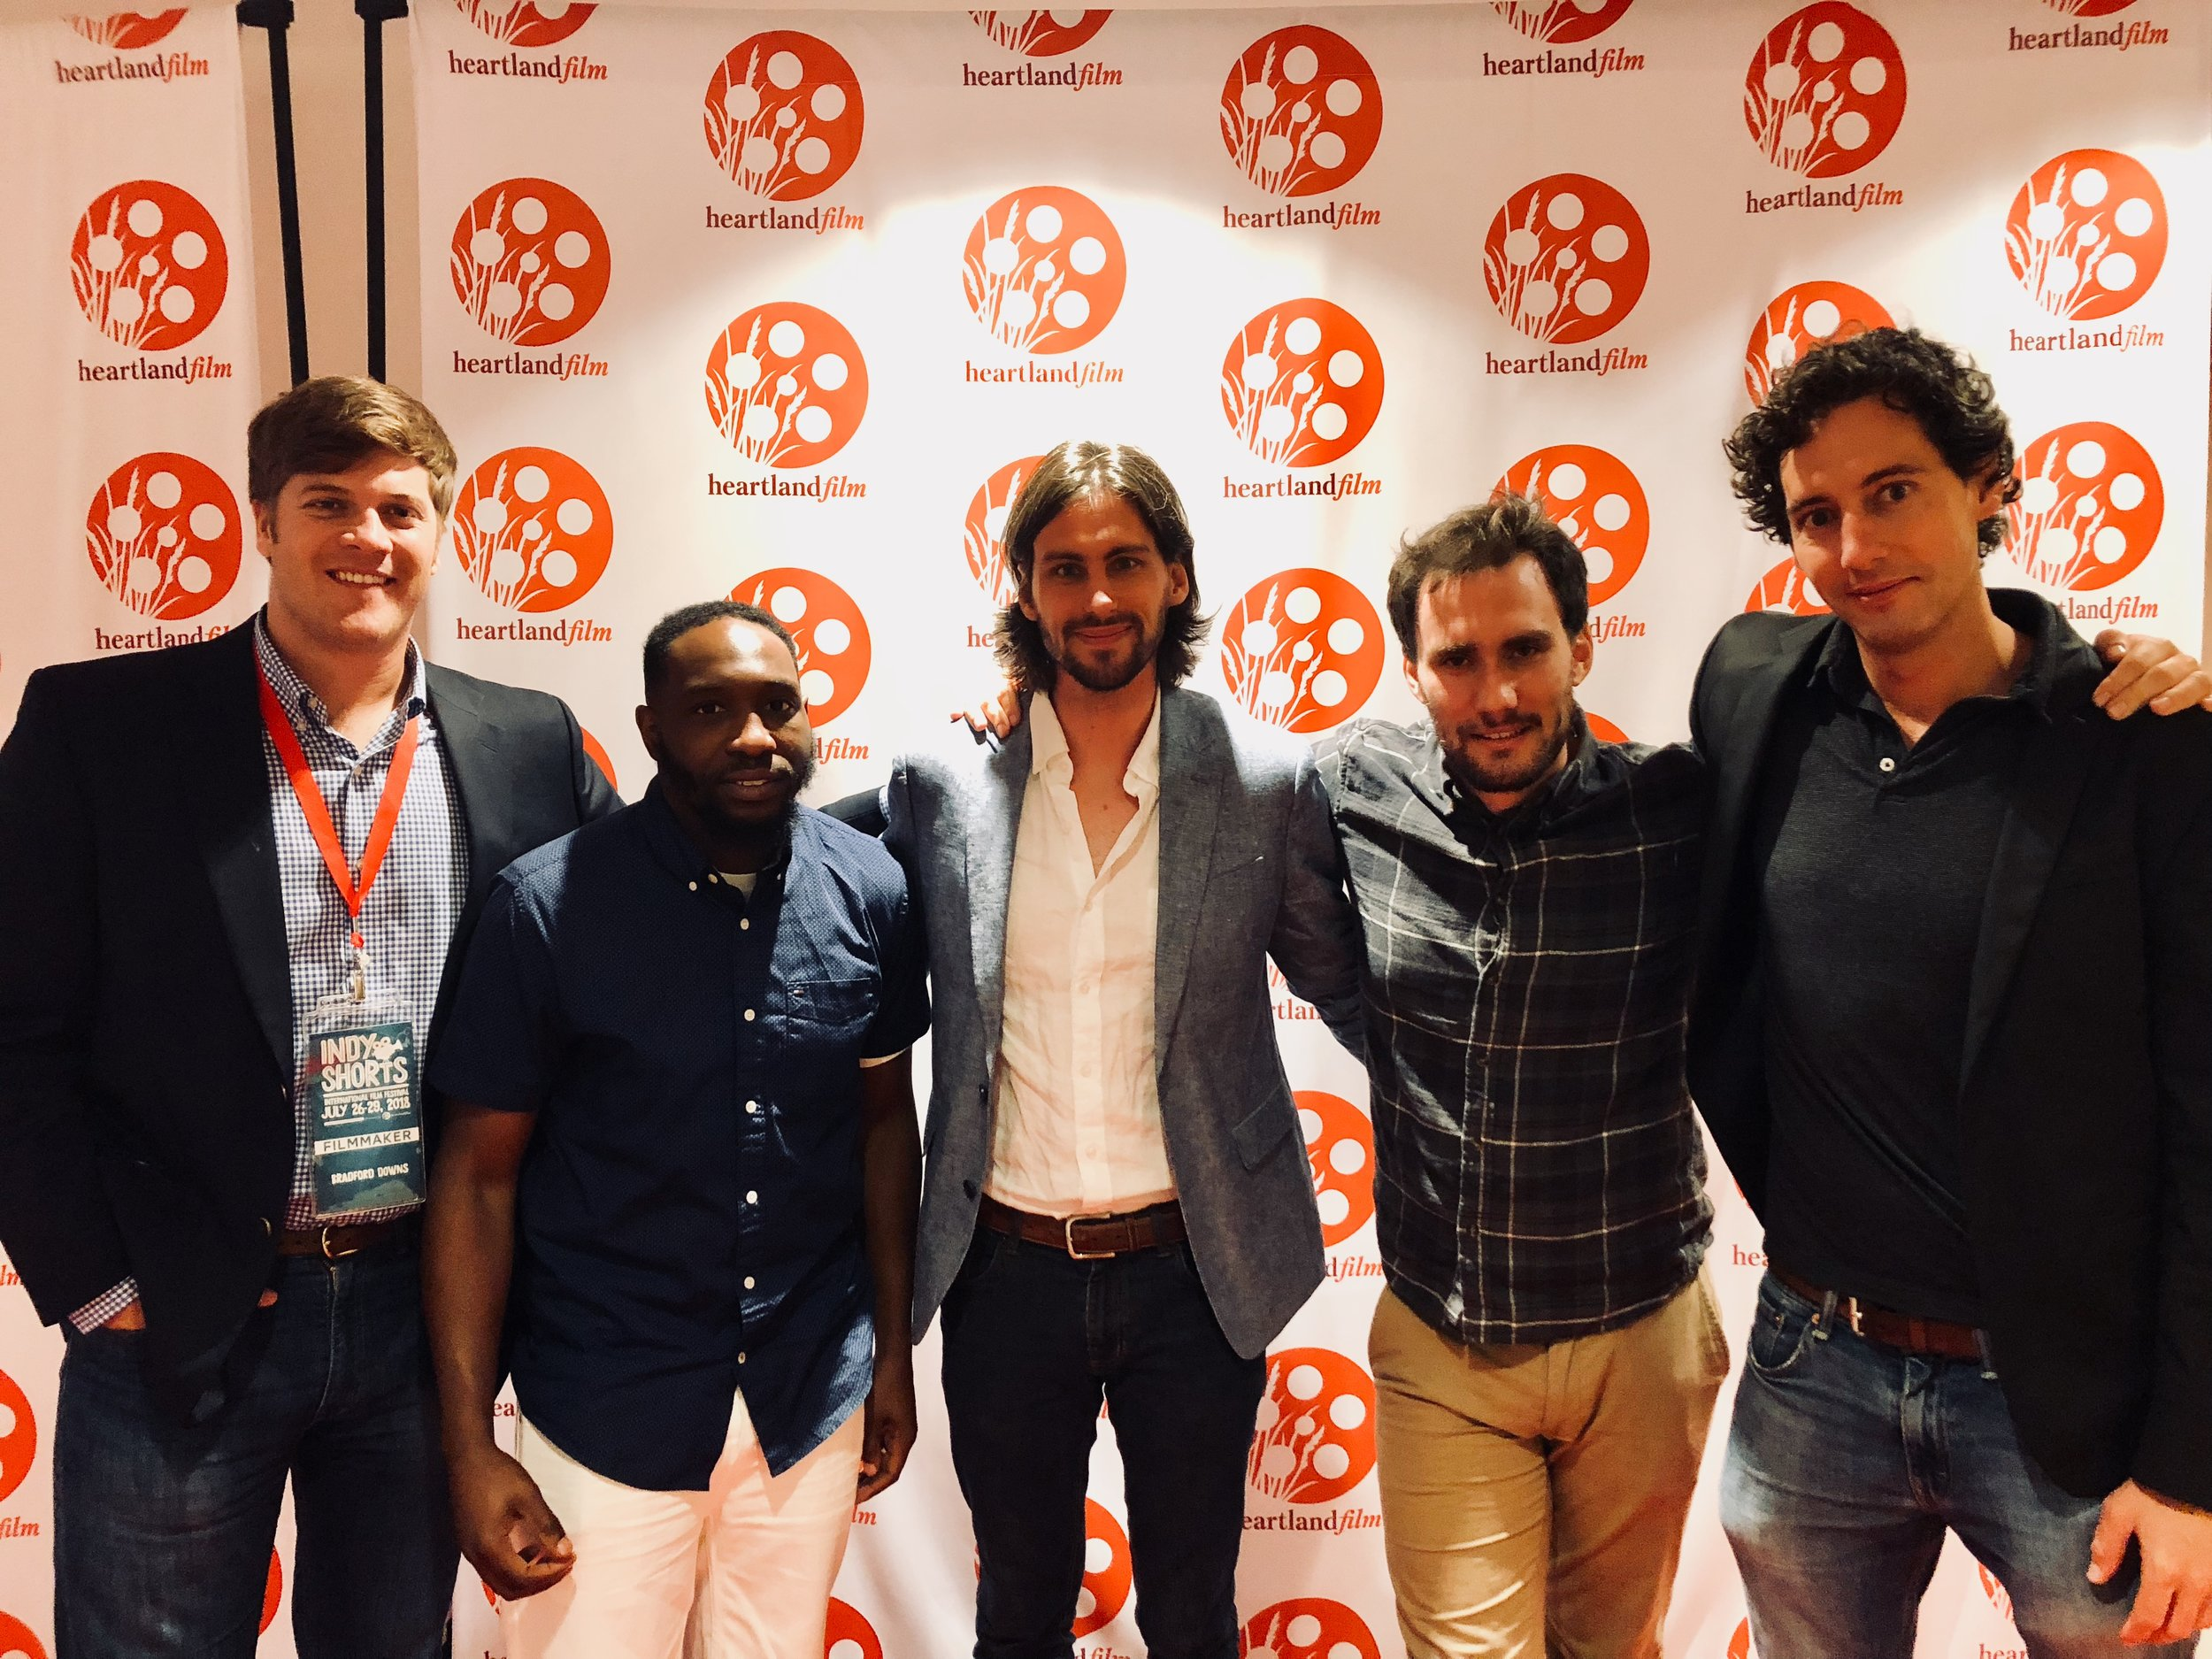 Producer Bradford Downs; Star Jerome Conquest (a.k.a. The Conqueror); Director Timothy Blackwood; Cinematographer Stephen St. Peter; Writer Jesse Blackwood.